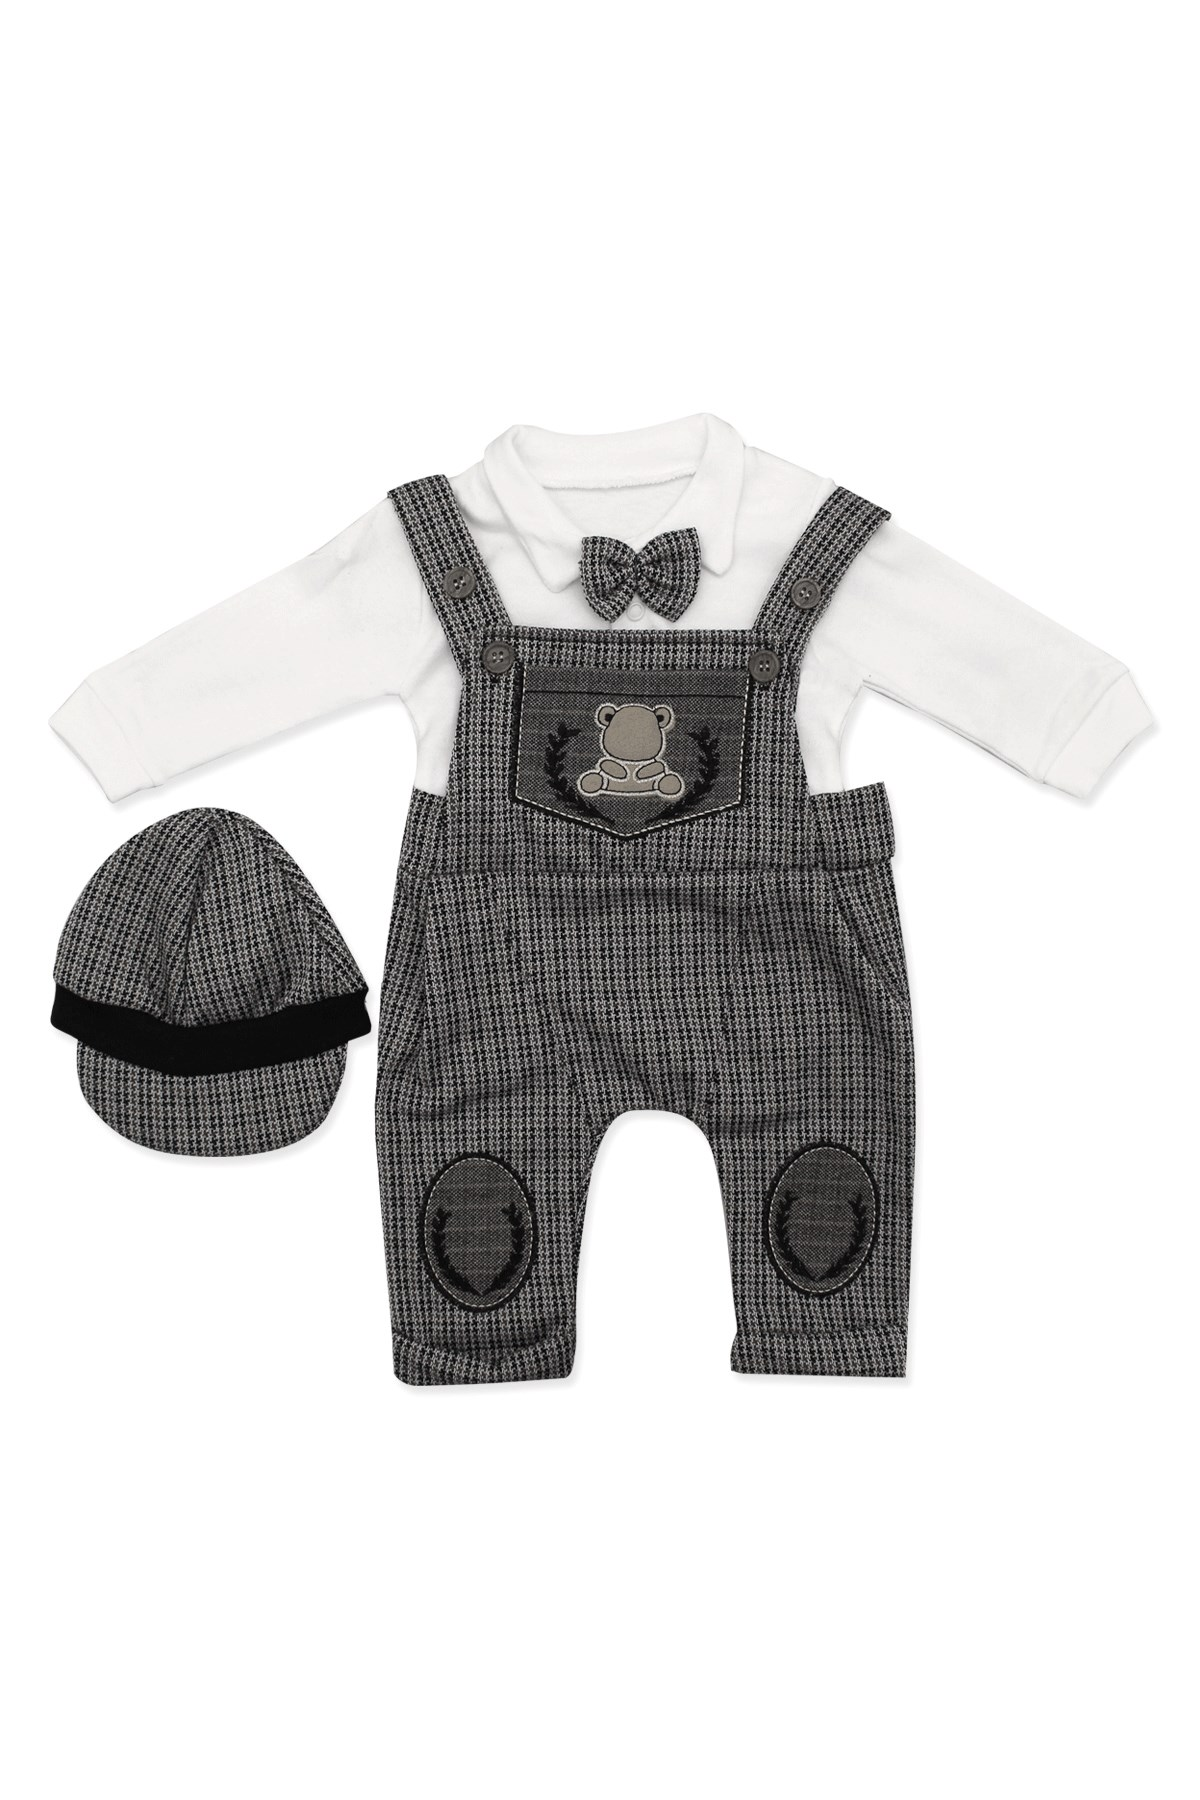 Baby Boy's Strappy Brown 3 Pieces Outfit Set